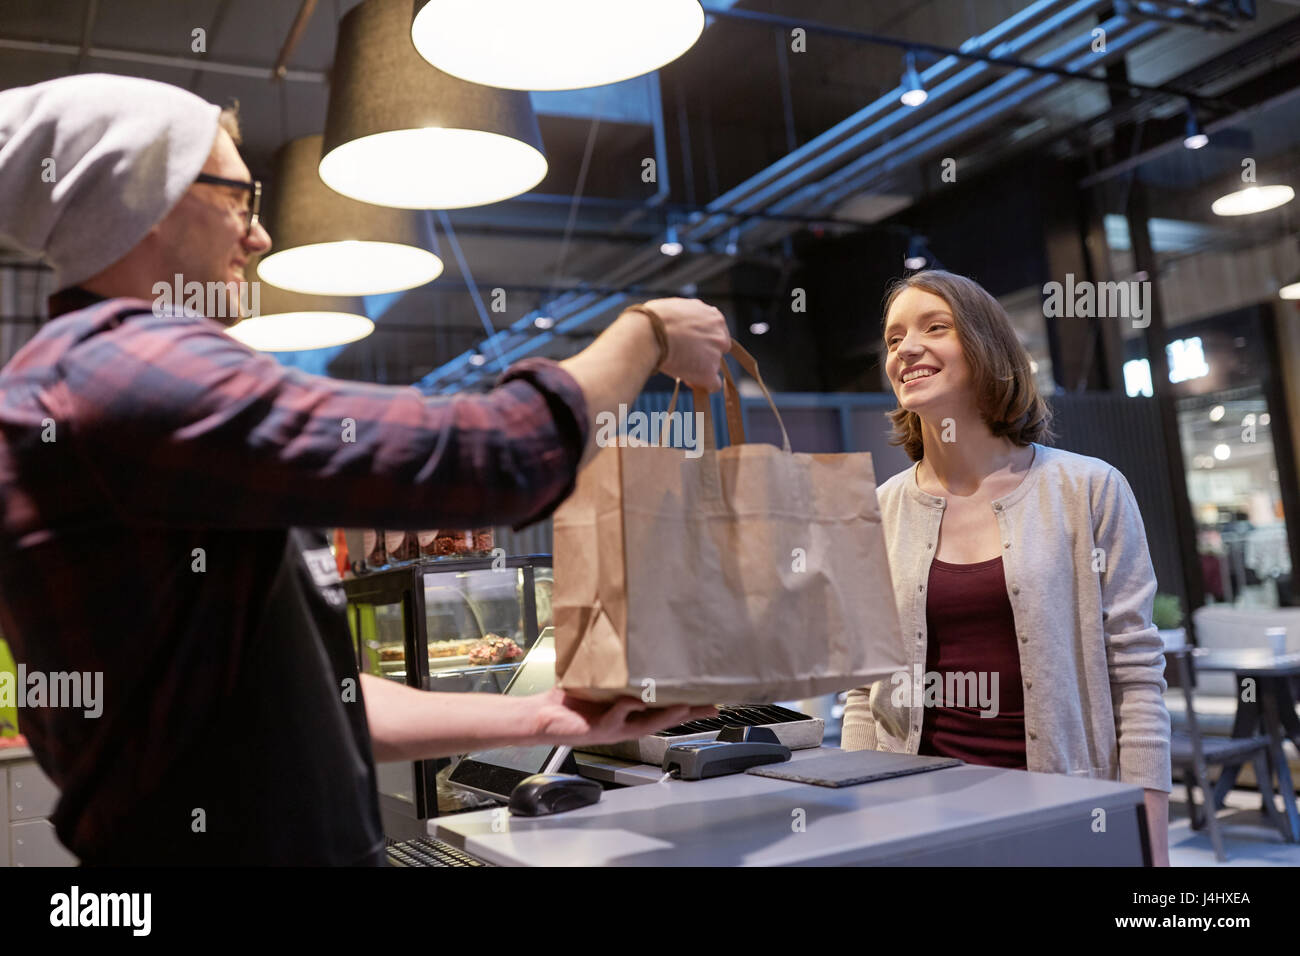 seller giving paper bag to customer at vegan cafe - Stock Image